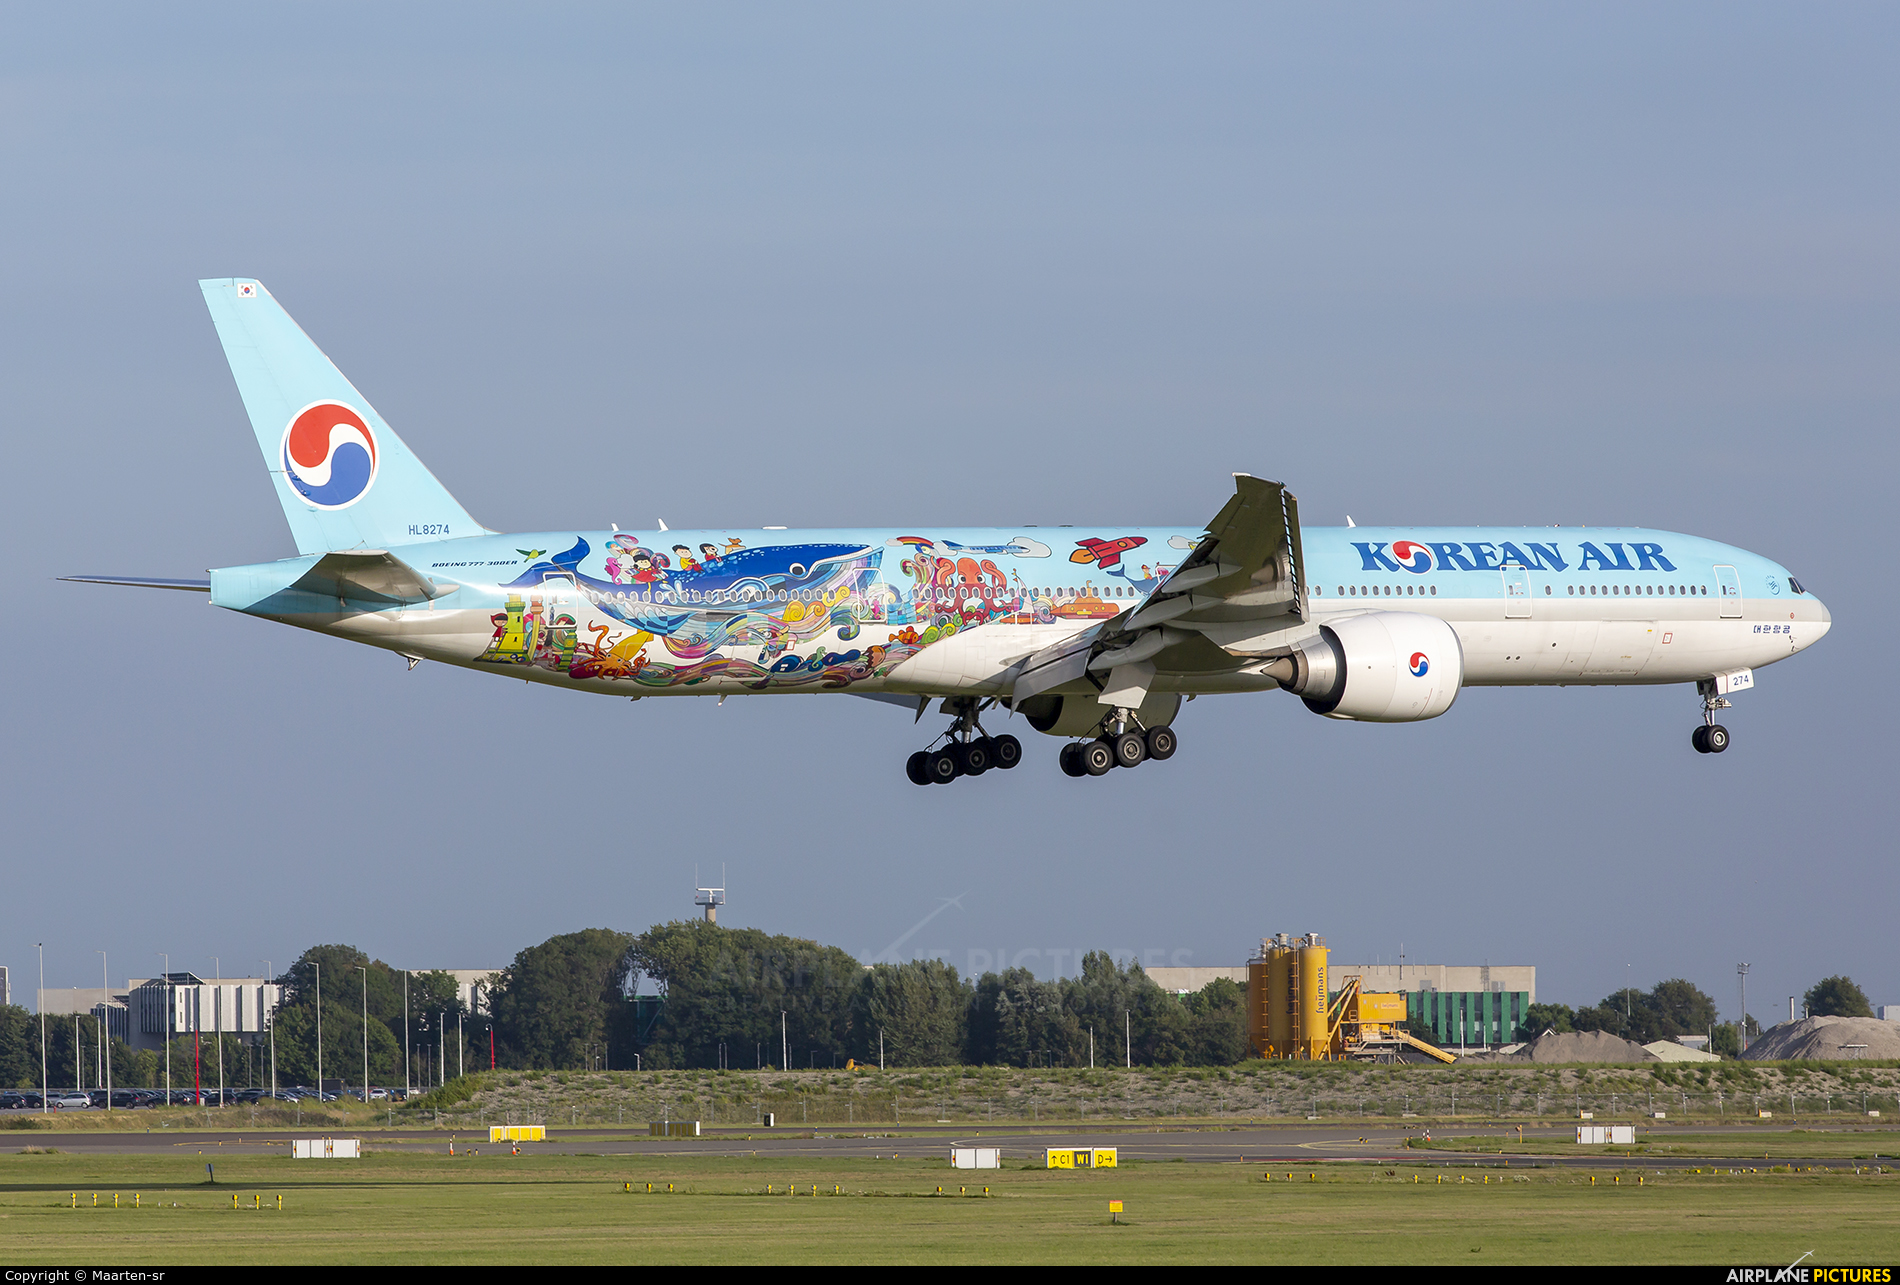 Korean Air HL8274 aircraft at Amsterdam - Schiphol